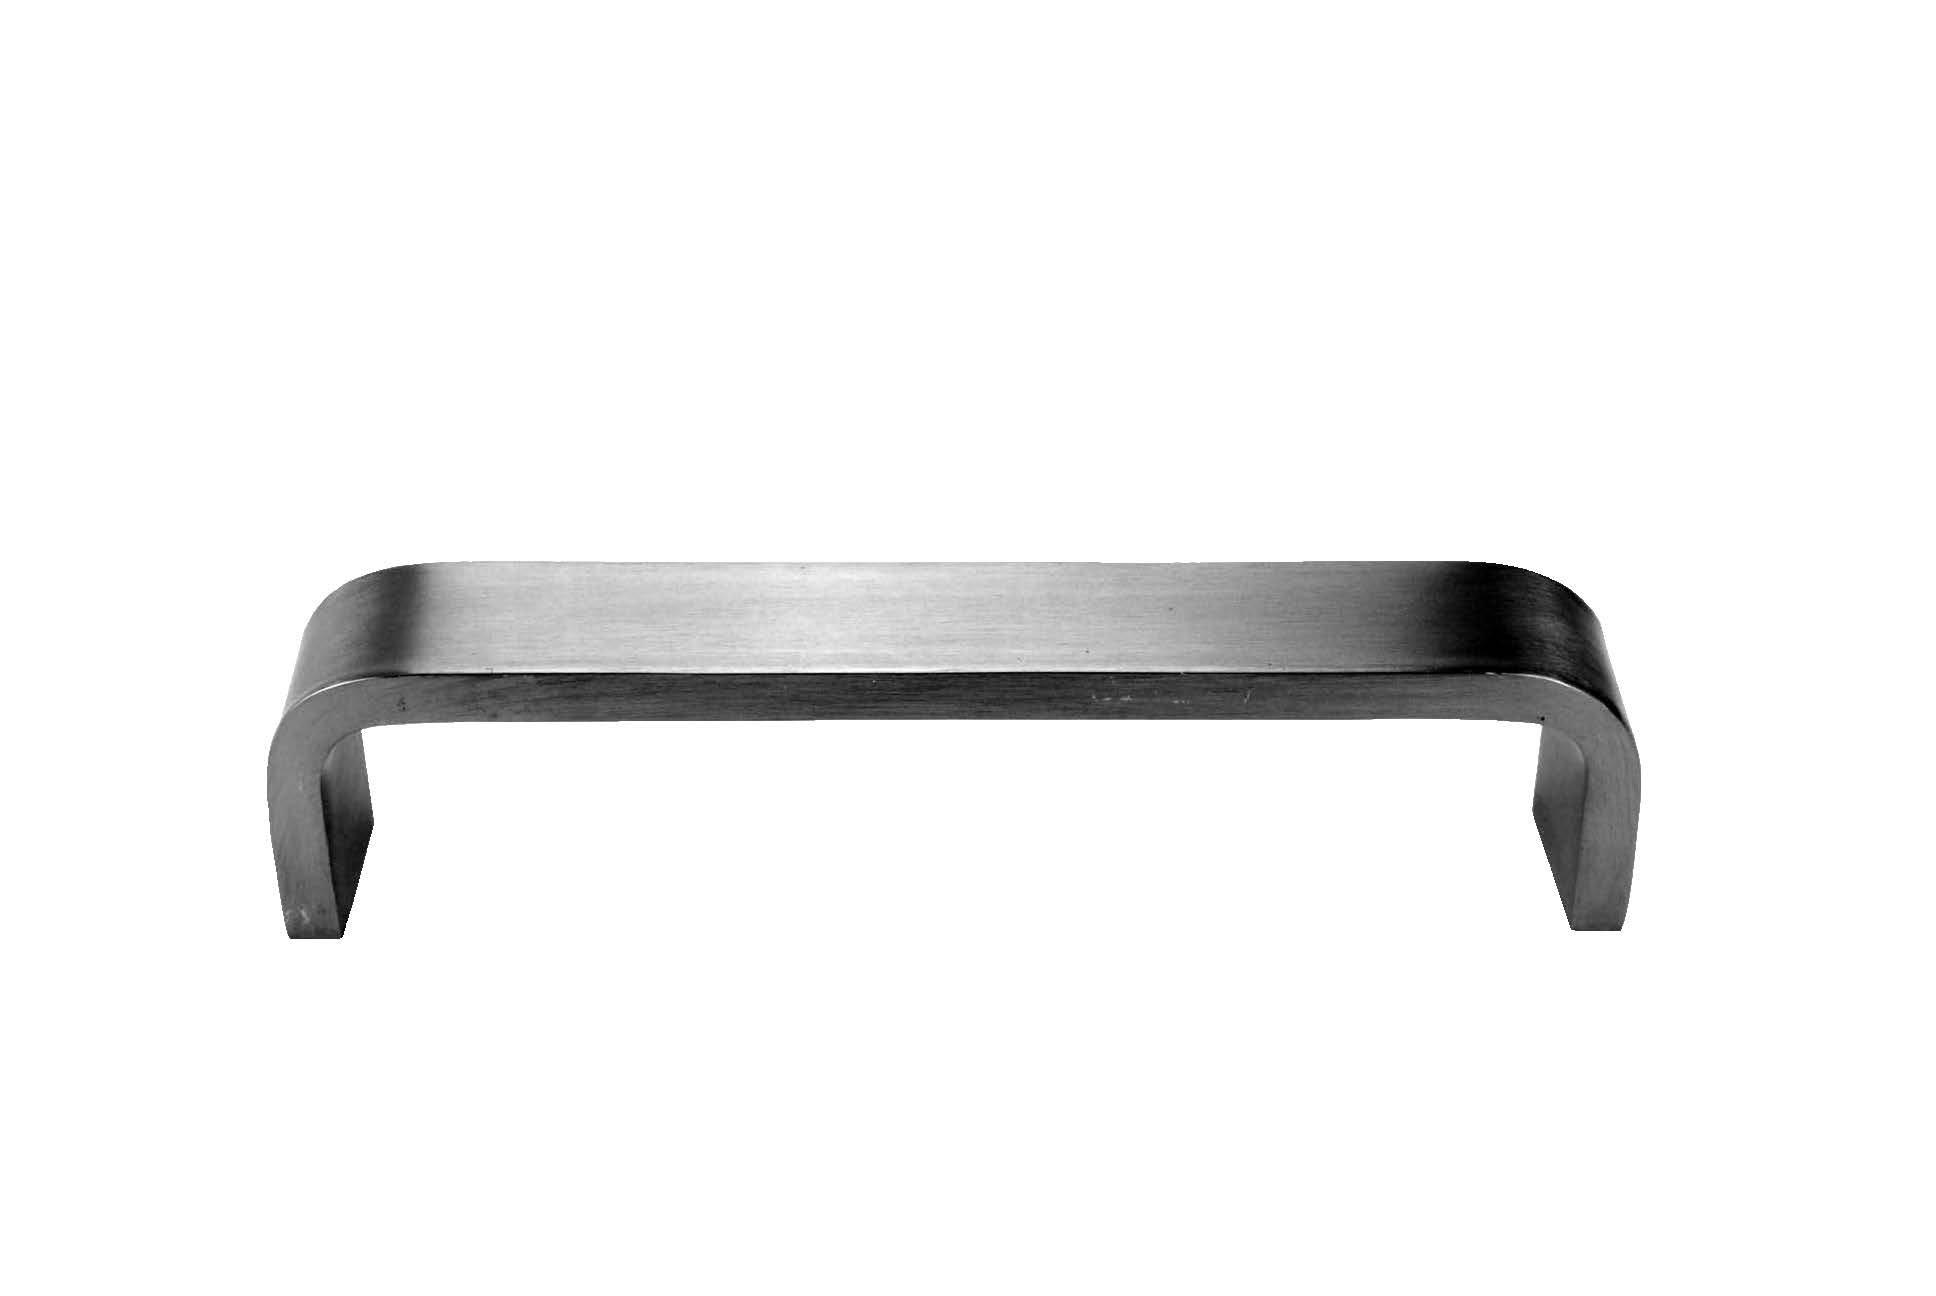 Don-Jo 30 Solid Bar Stock Flat Bar Door Pull with Through Holes, Rectangular, Satin Stainless Steel Finish, 6'' Center-to-Center, 2'' Projection, 1-5/8'' Clearance by Don-Jo